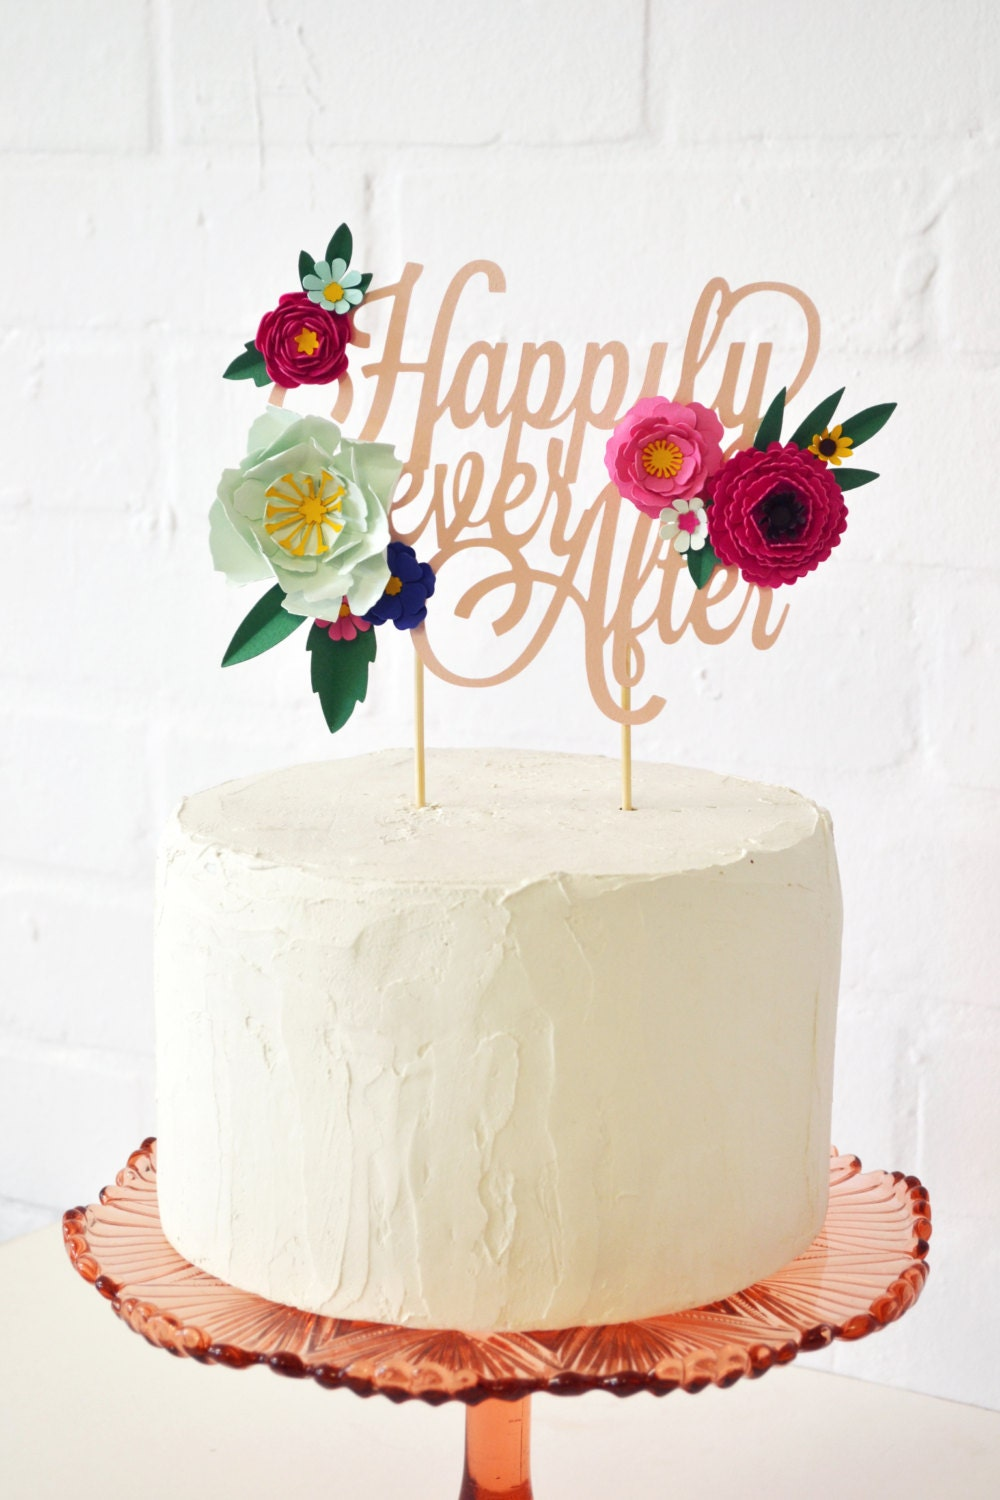 Cake Toppers With Flowers : Handmade  Happily Ever After  Paper Flower Cake Topper